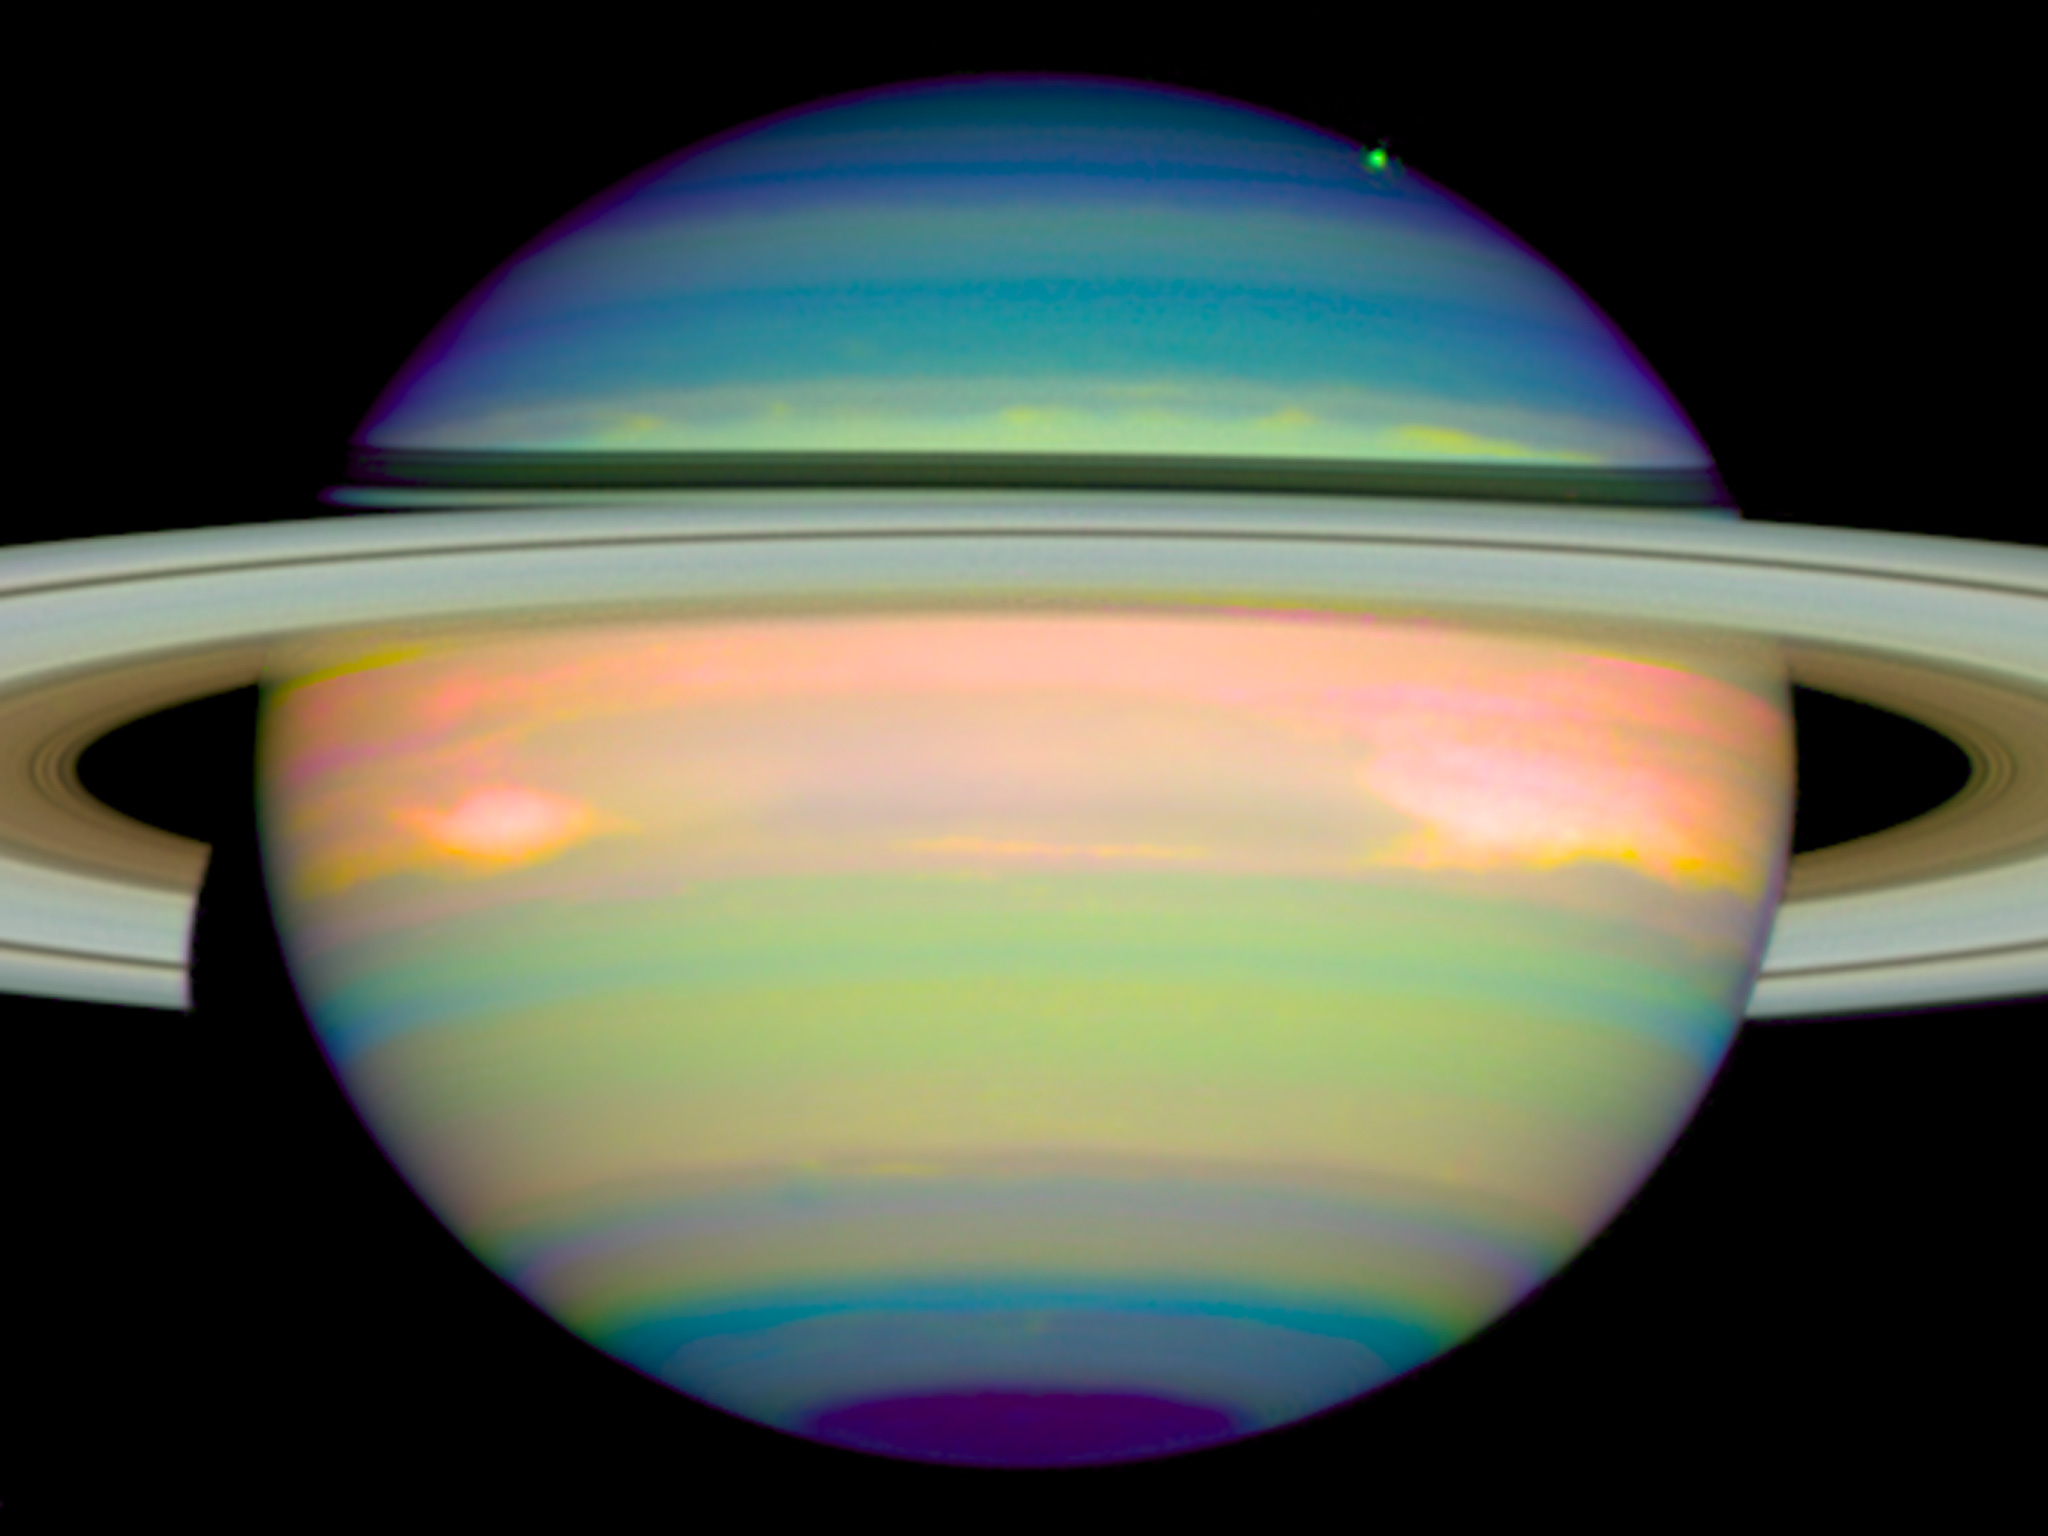 Saturn Hubble Pics About Space